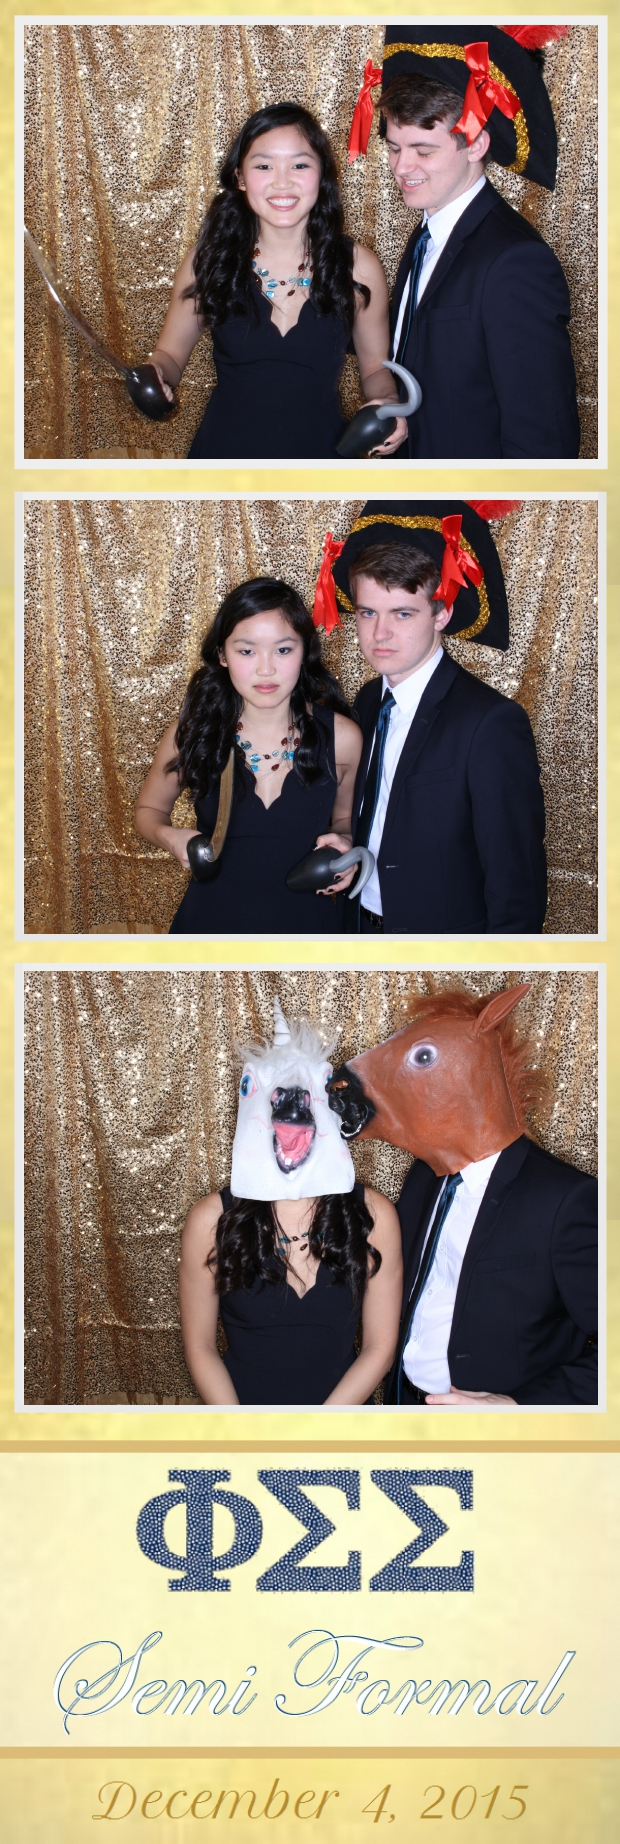 Guest House Events Photo Booth Phi Sigma Sigma Semi Formal (13).jpg